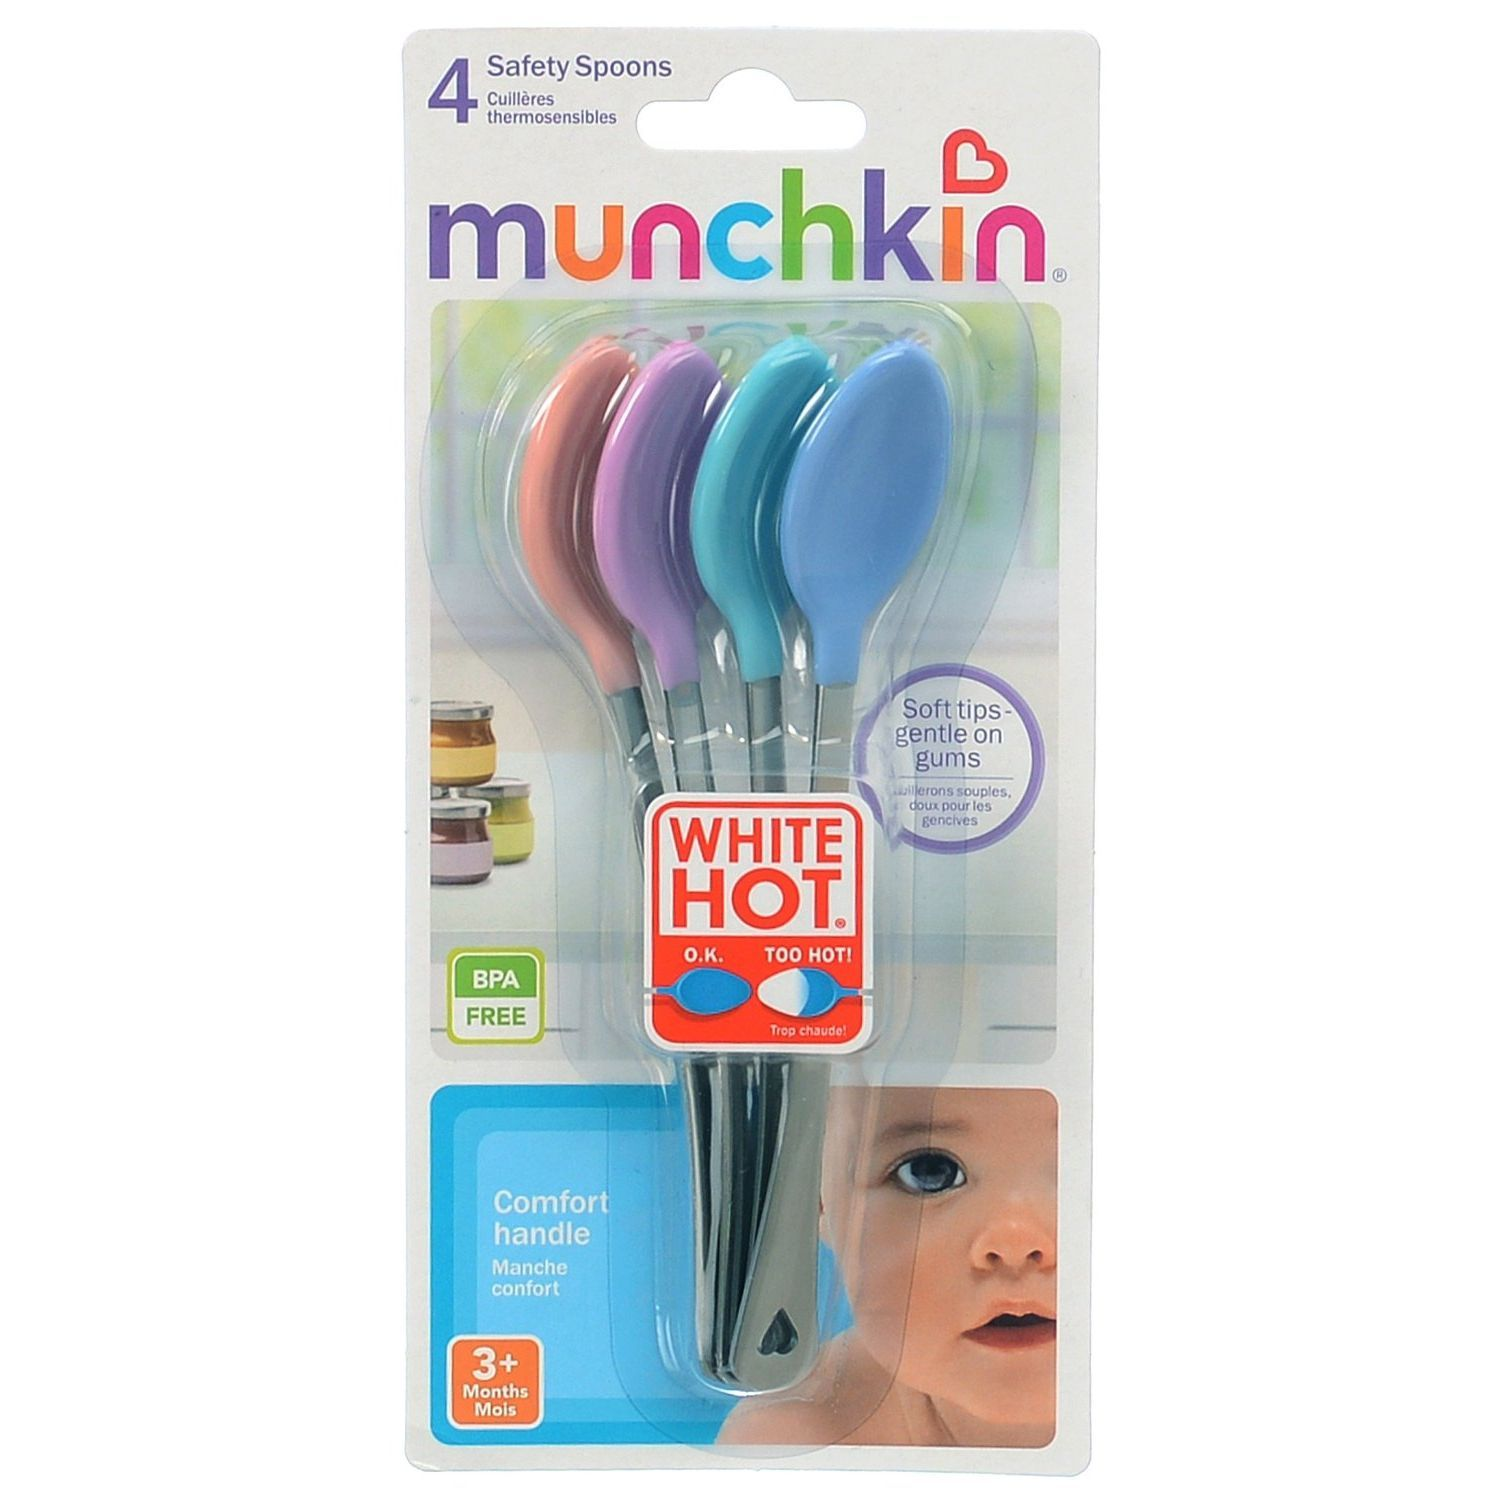 Munchkin White Hot Safety Spoons 4pk